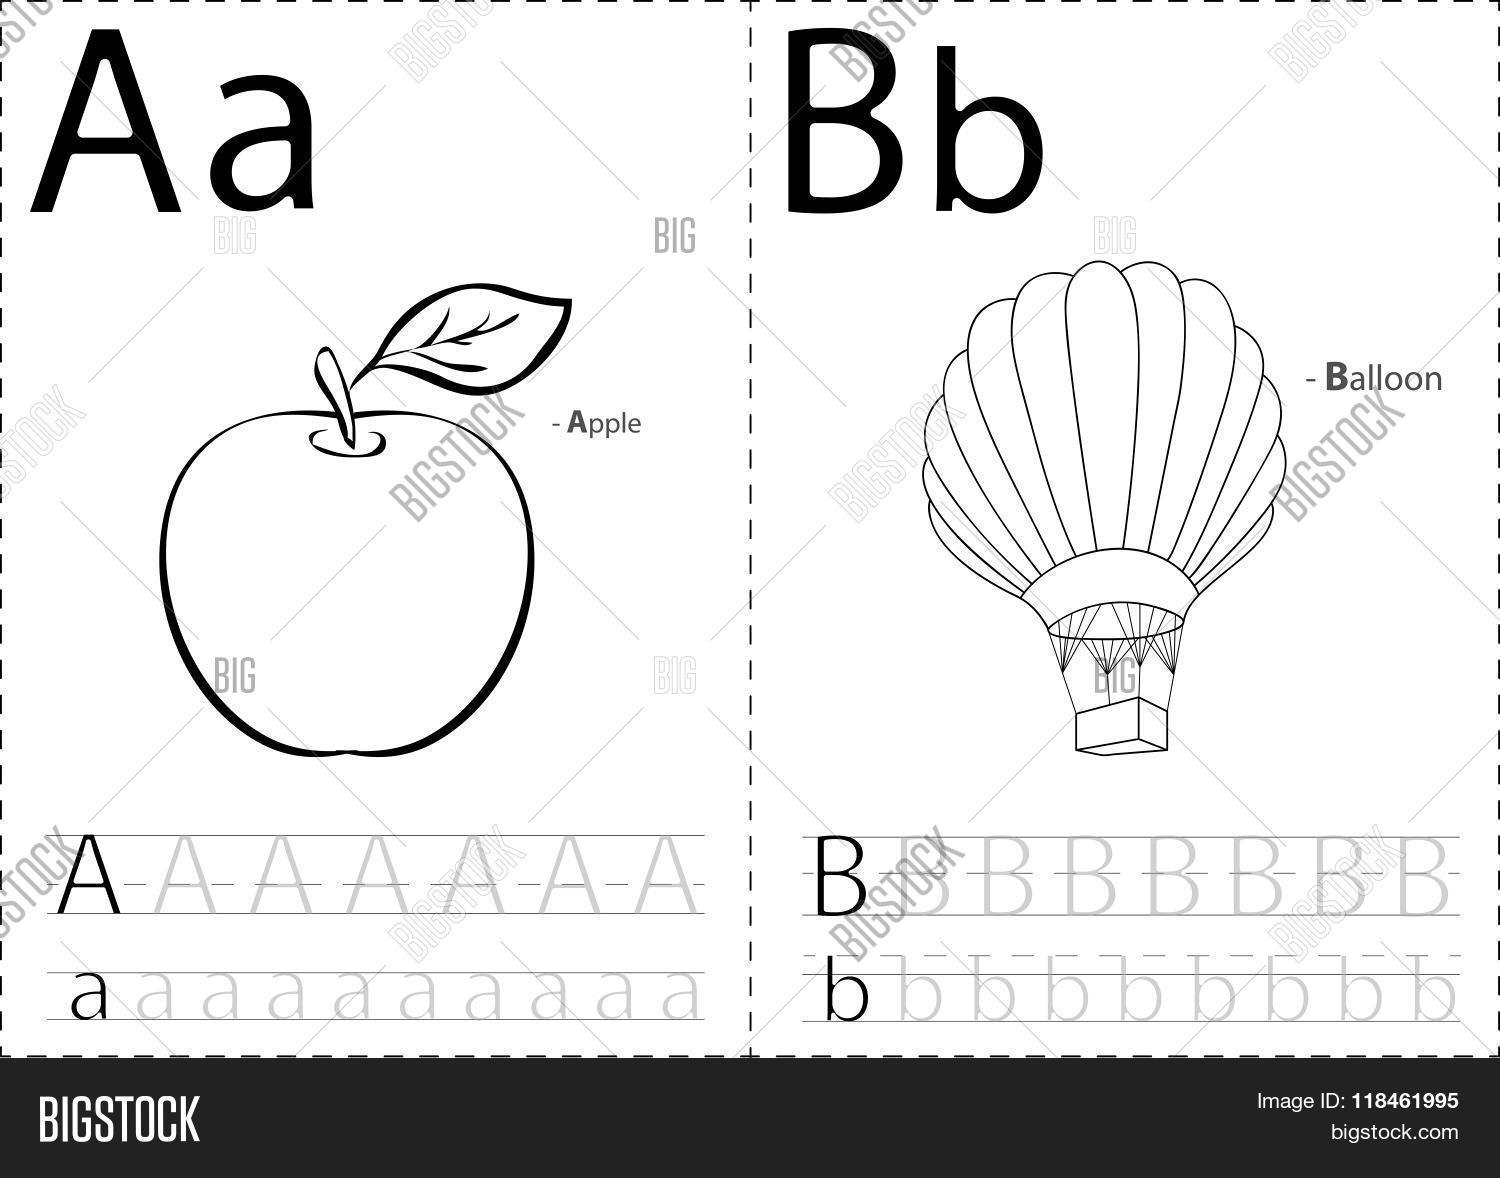 Cartoon Apple Balloon Alphabet Vector Photo – Alphabet Tracing Worksheets A-z